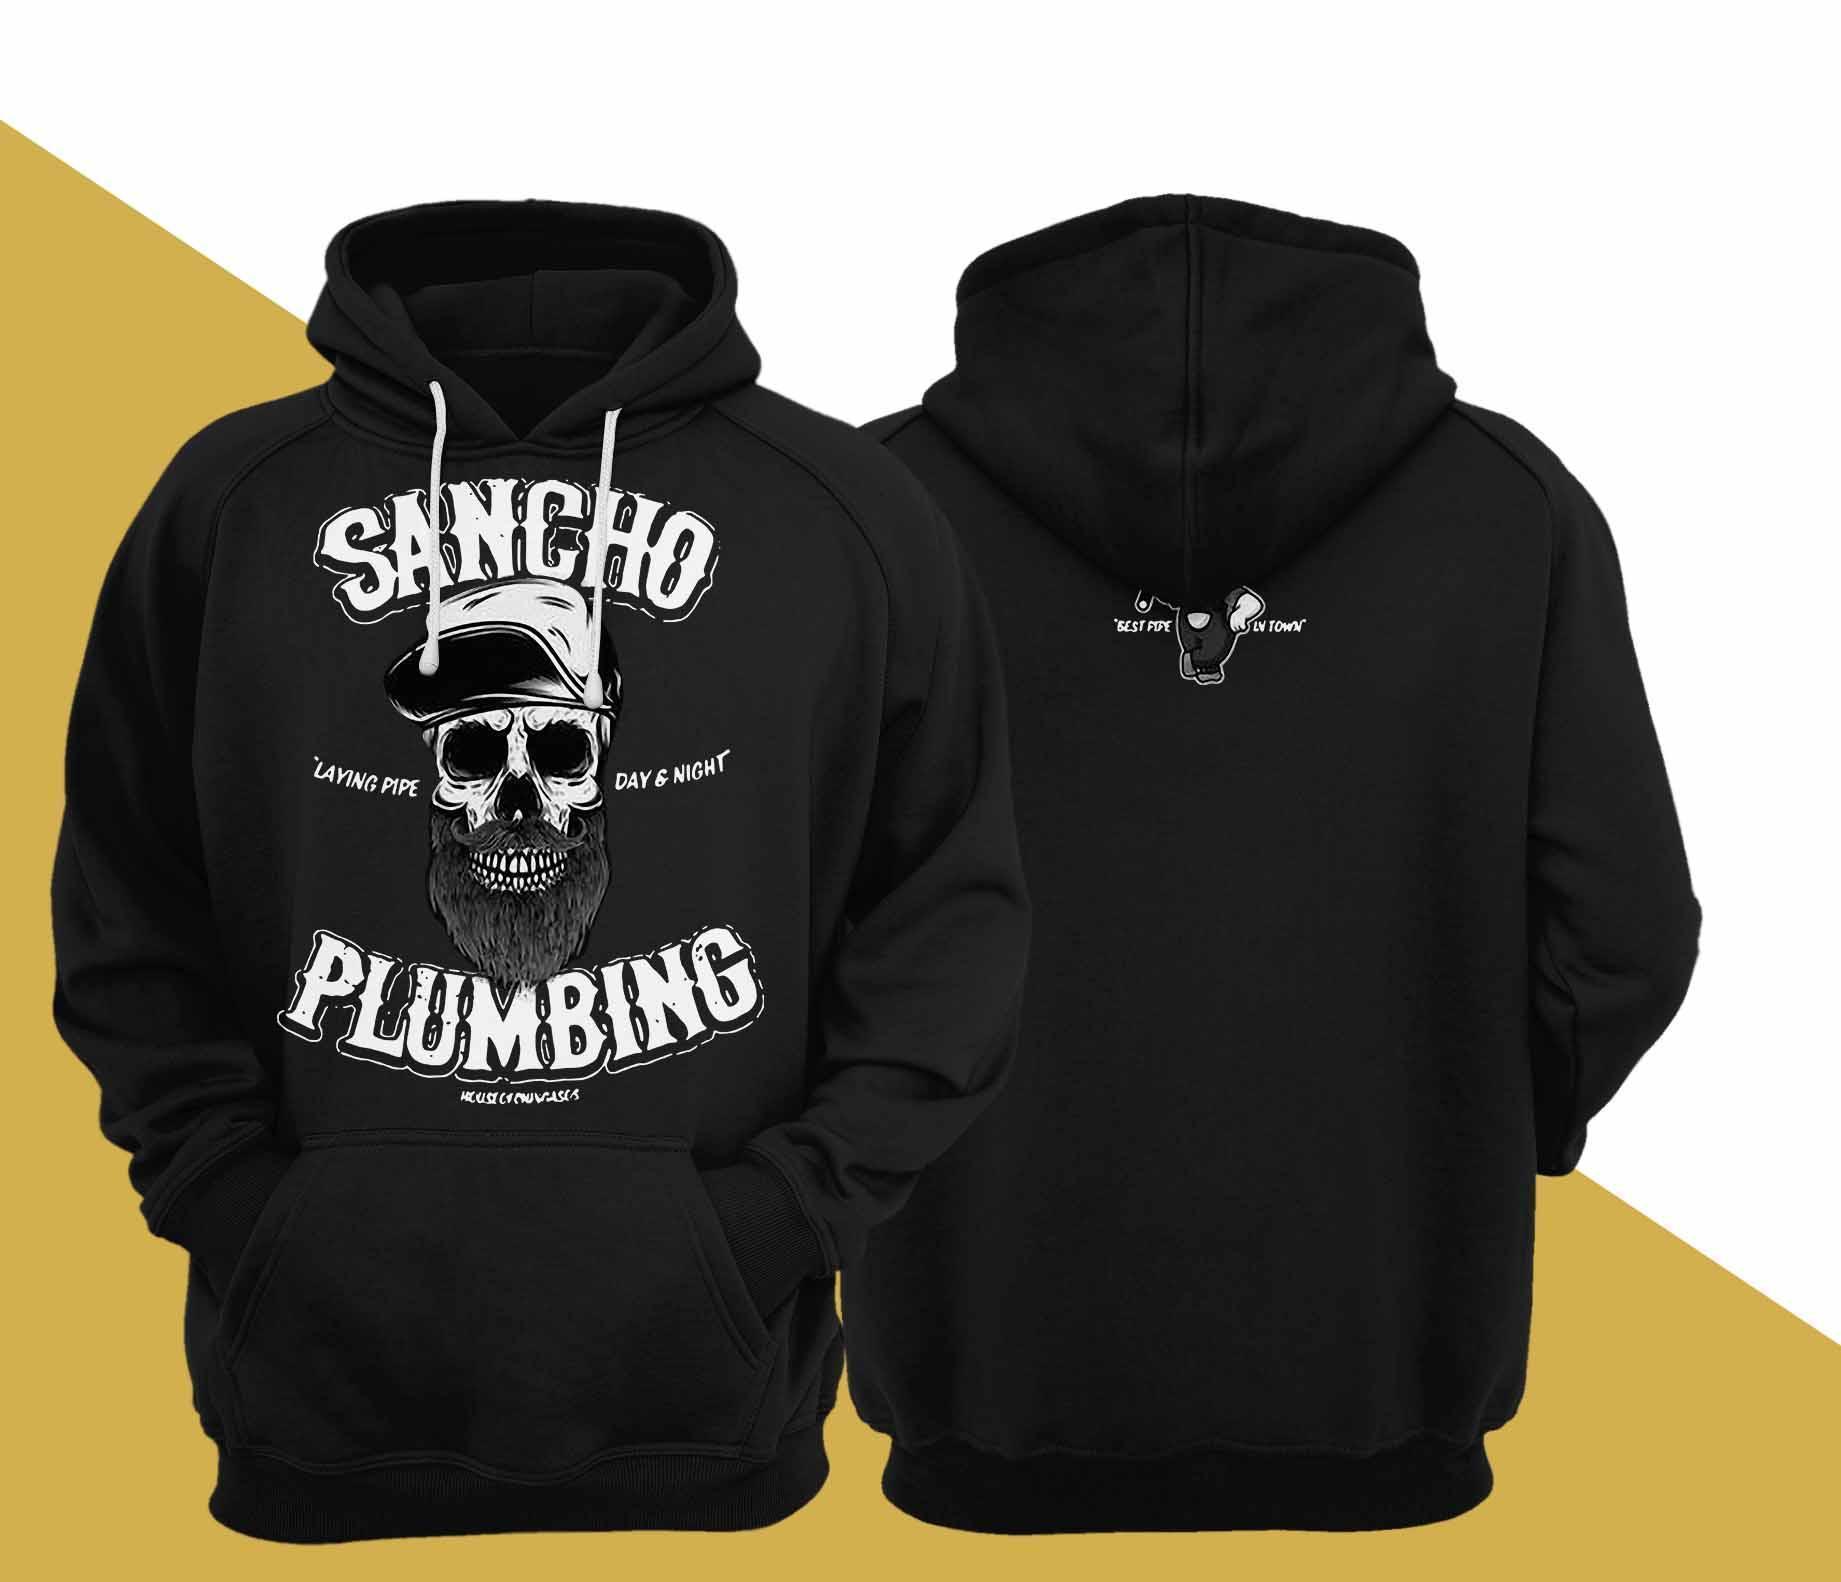 Sancho Plumbing Laying Pipe Day And Night Hoodie